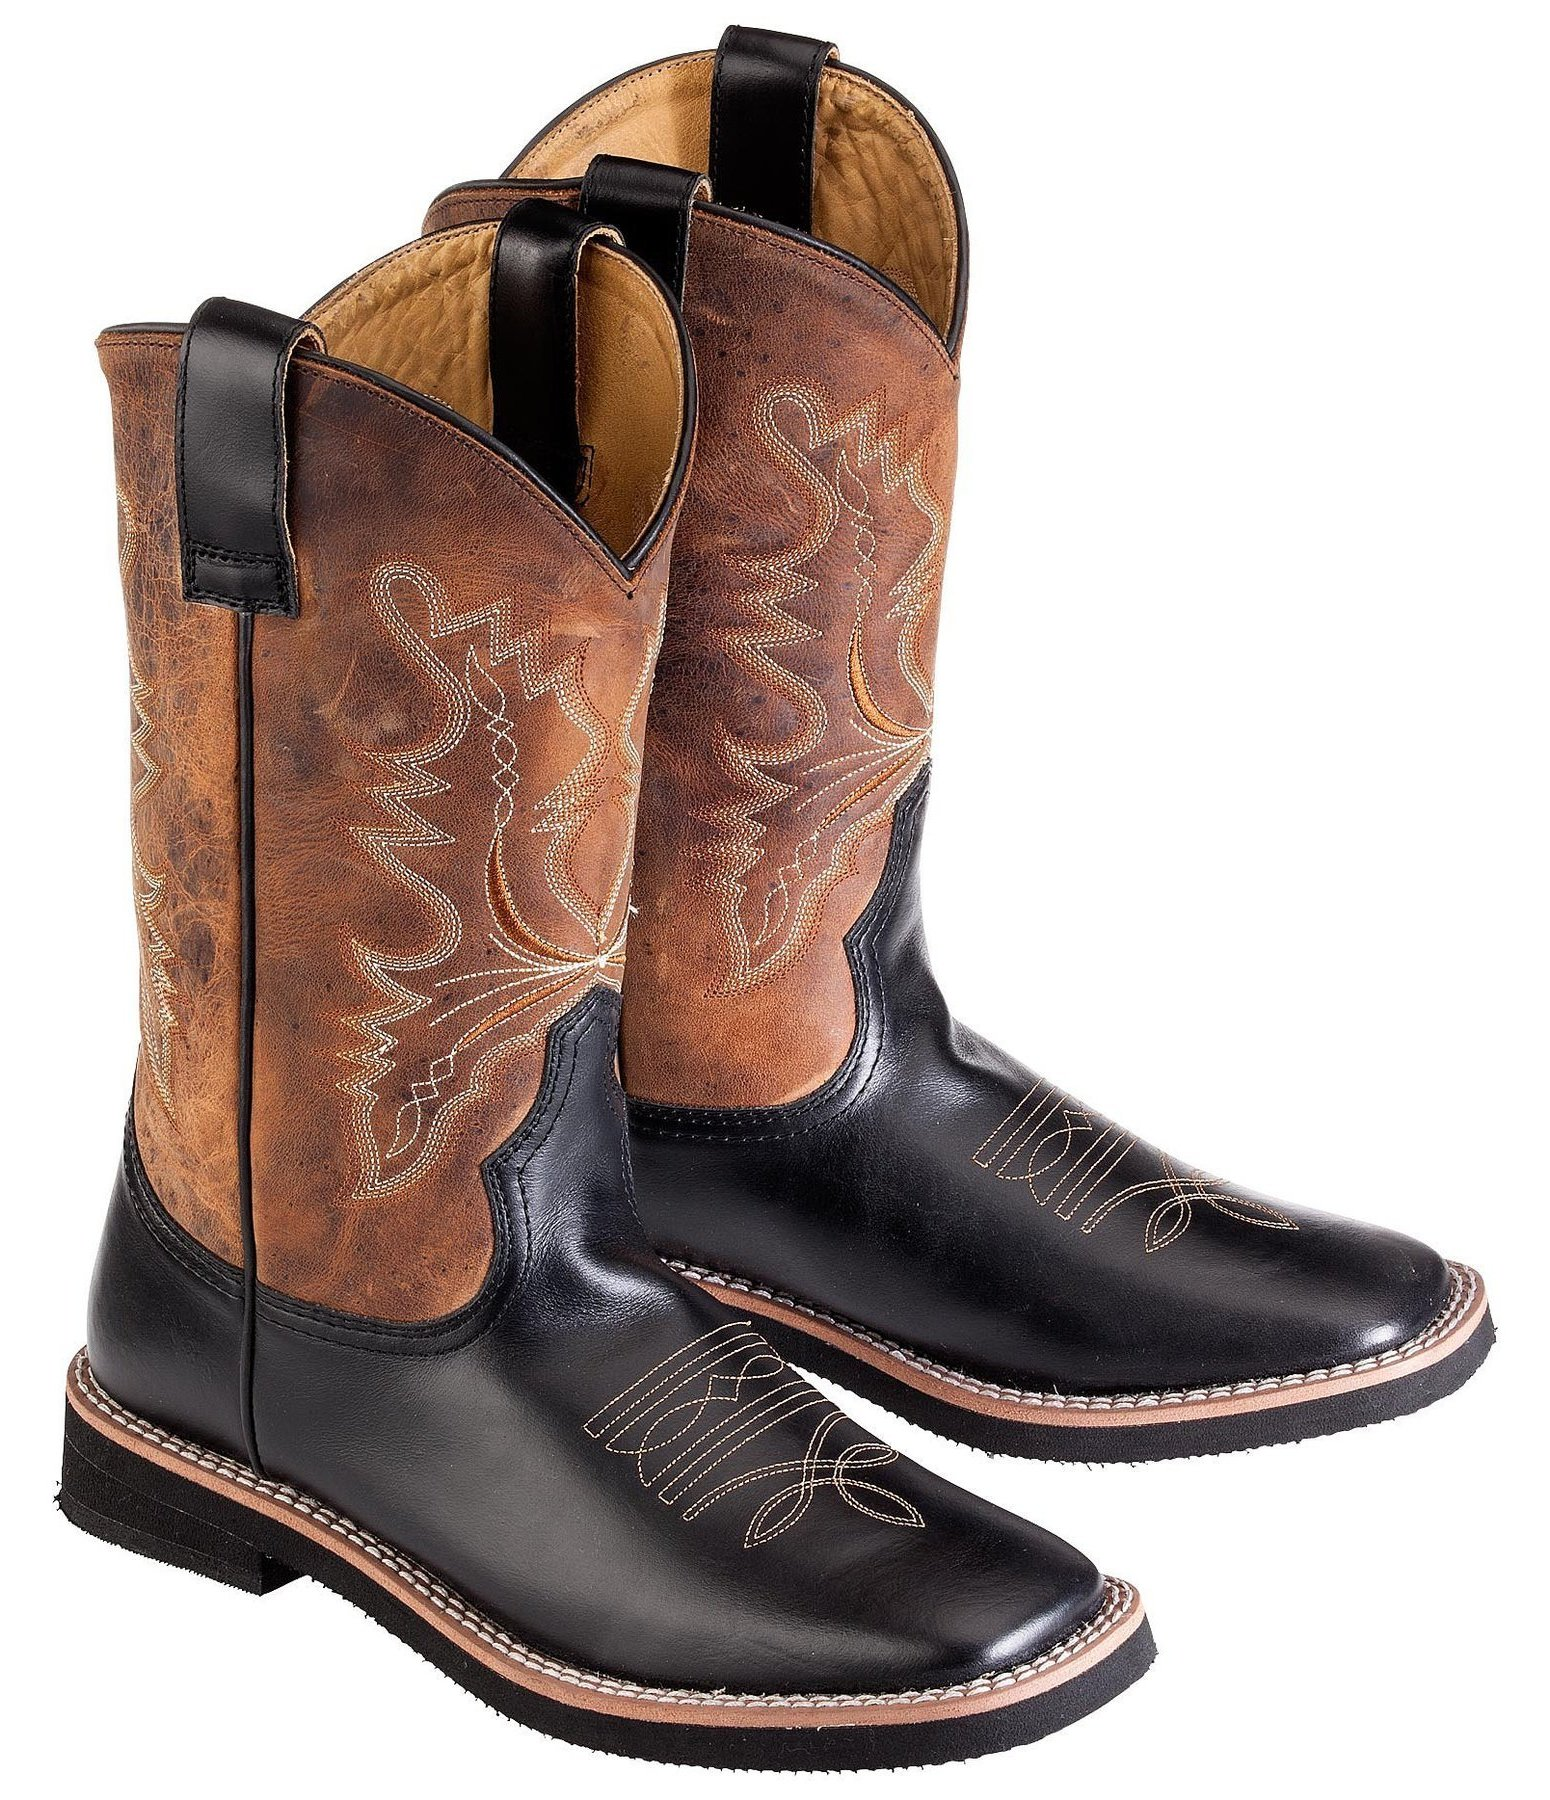 """Mar 29, · """"What a nice surprise, buy 1 pair get two free, WOW!"""" Review of Boot Country. 35 photos. Boot Country. If your looking for a pair of Cowboy boots, this is the place to go. Buy one pair and two free. Share with a family member or save them all for yourself. Large selection. Believe me, you won't walk away without a pair or three TripAdvisor reviews."""